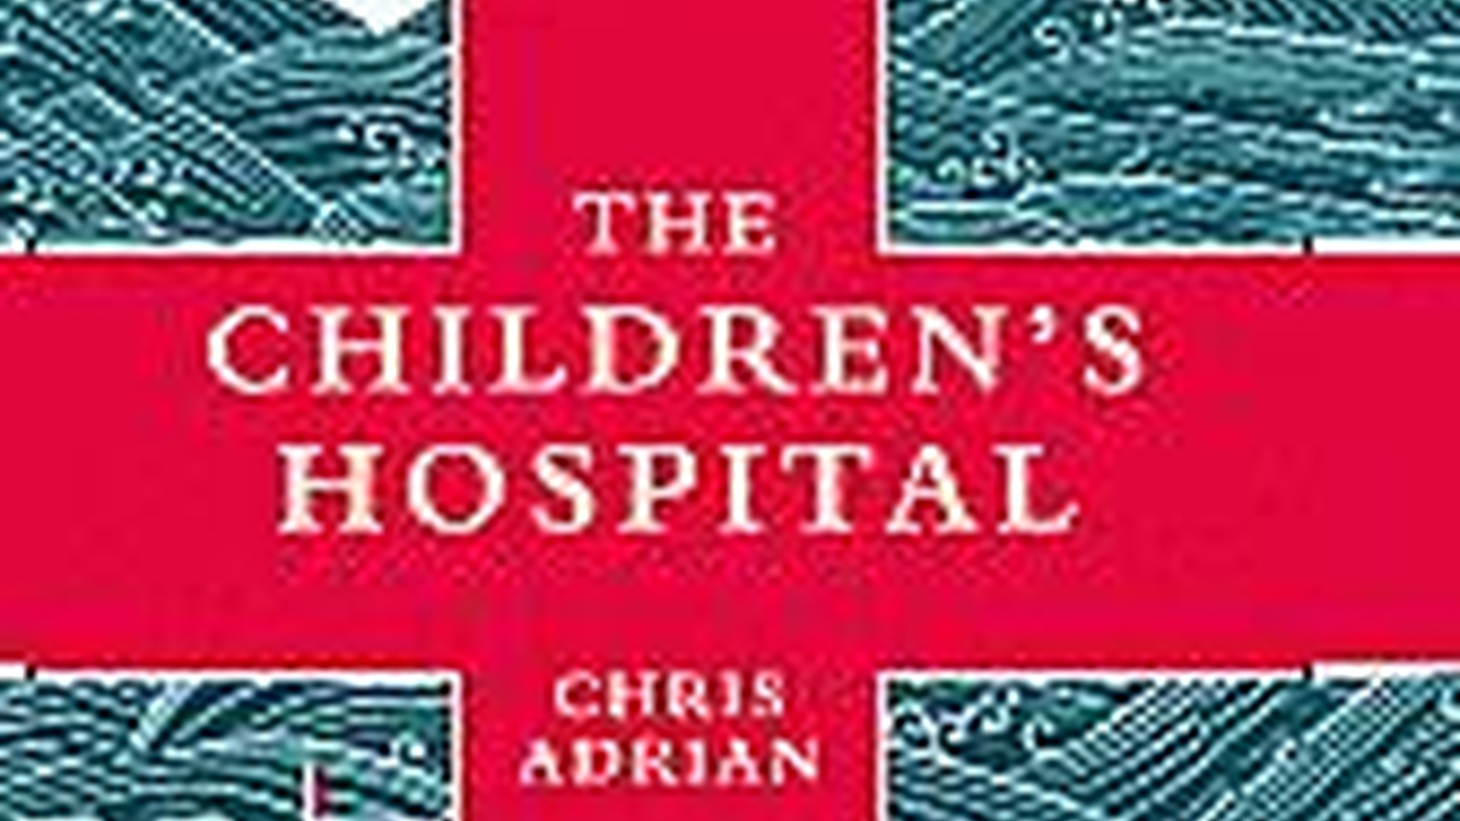 Author Chris Adrian, a pediatrician and theologian, imagines a future in which a